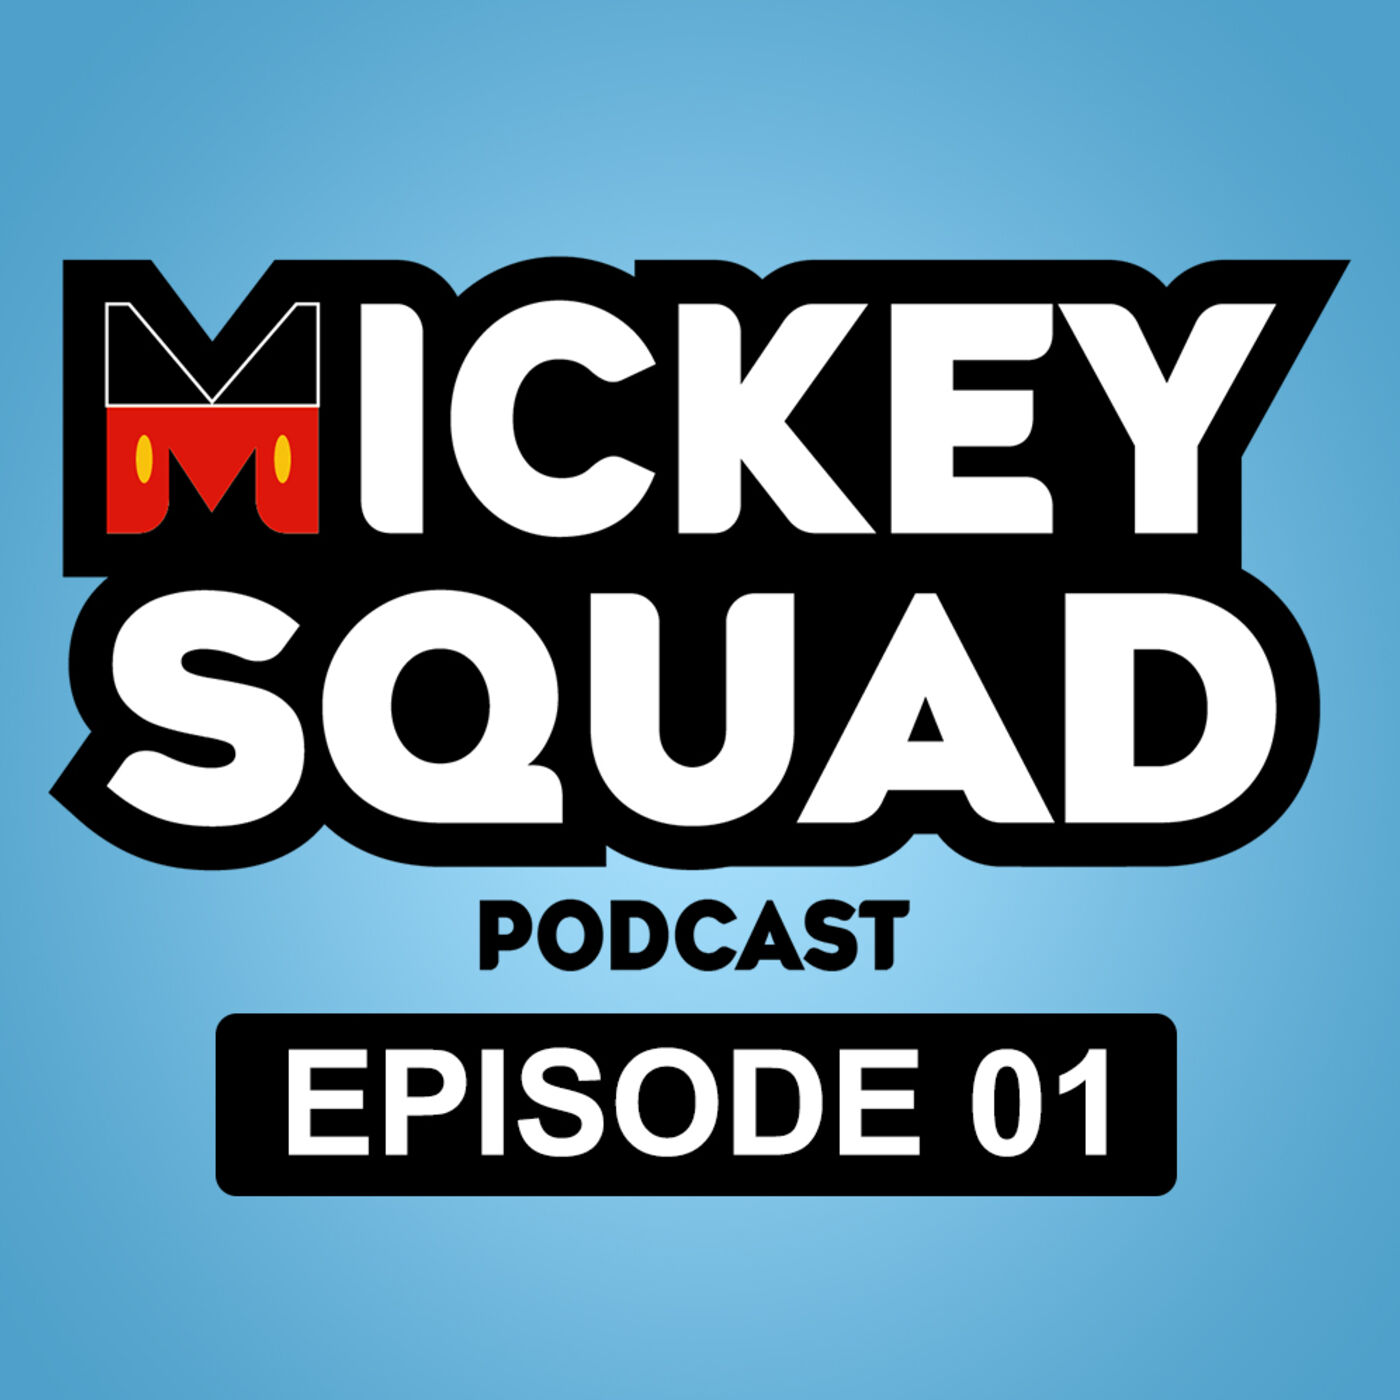 Episode 01 - The Most Magical Squad On Earth